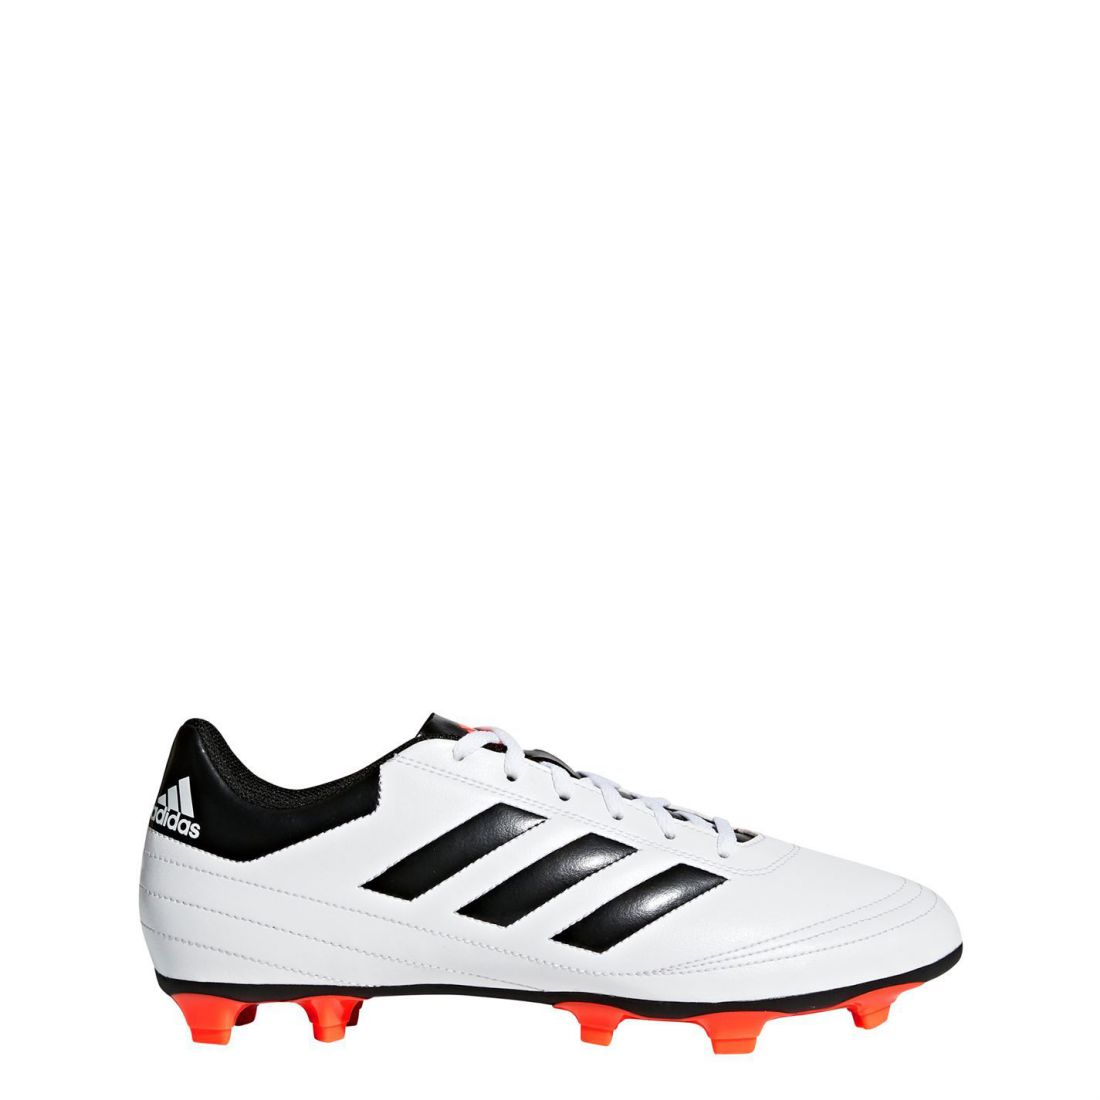 e6ef09f7 adidas Mens Goletto VI Firm Ground Football Boots Lace Up Padded Ankle  Collar